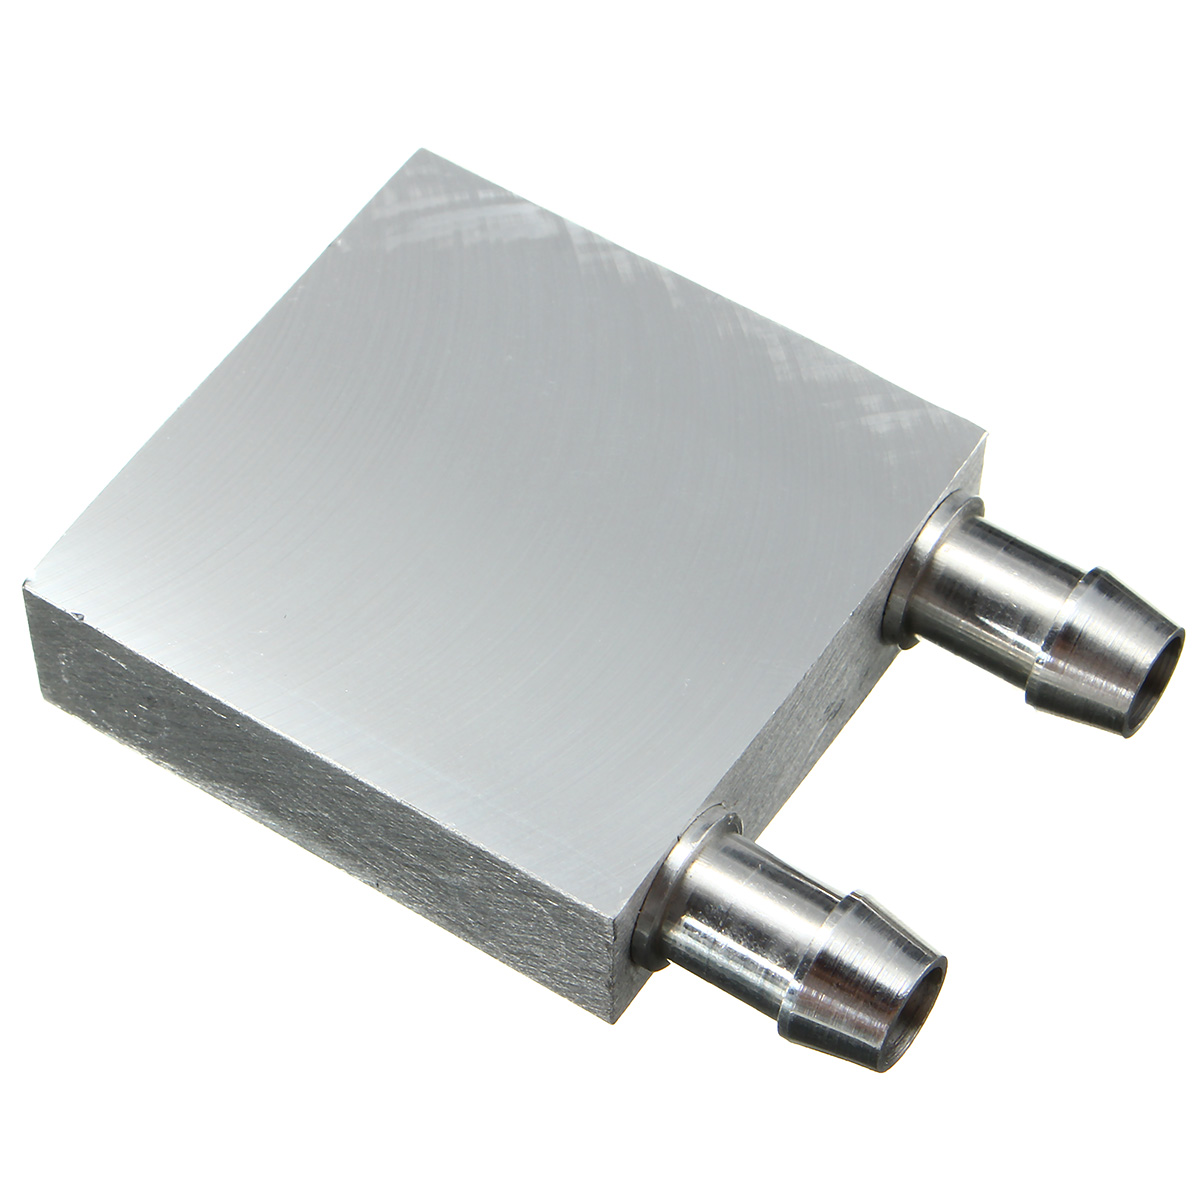 Primary Aluminum Water Cooling Block 40*40mm for Liquid Water Cooler Heat Sink System Silver Use For PC Laptop CPU